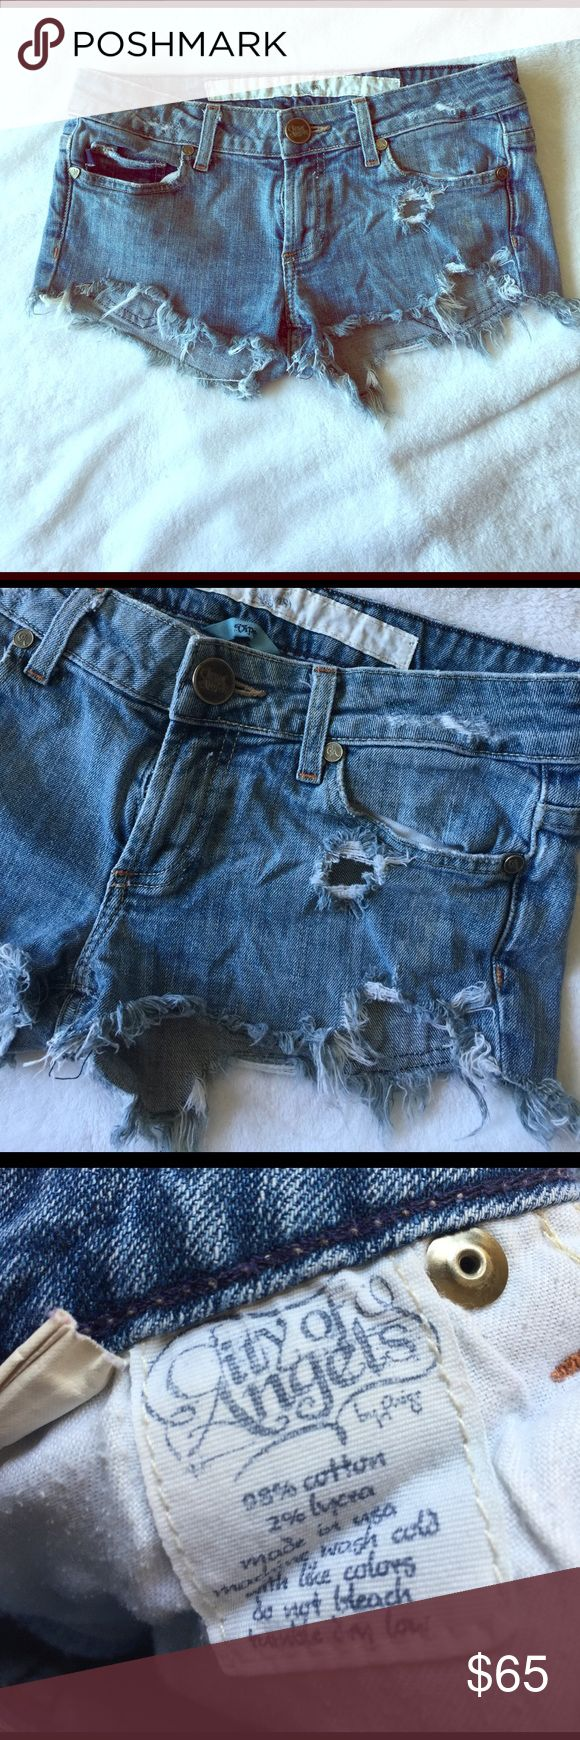 City Of Angels Distressed Jeanshorts Excellent Condition city of angels Shorts Jean Shorts